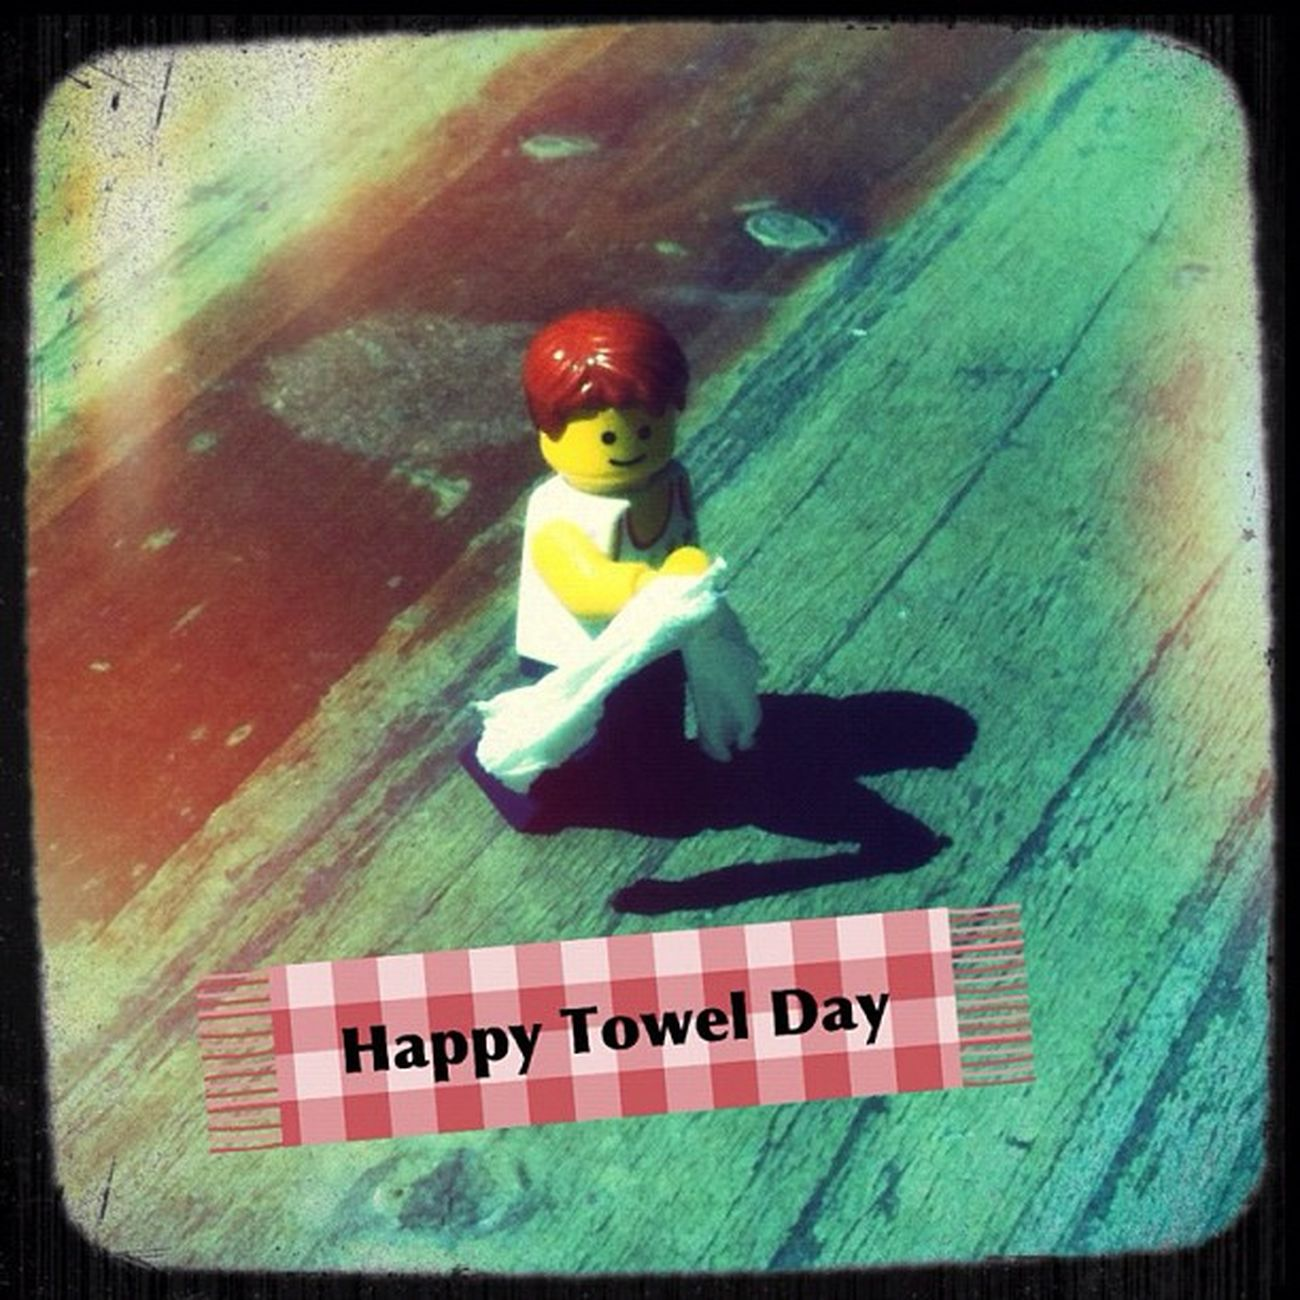 Happy Towel Day 2012 Towelday Berlin Travel LEGO Berlintourist